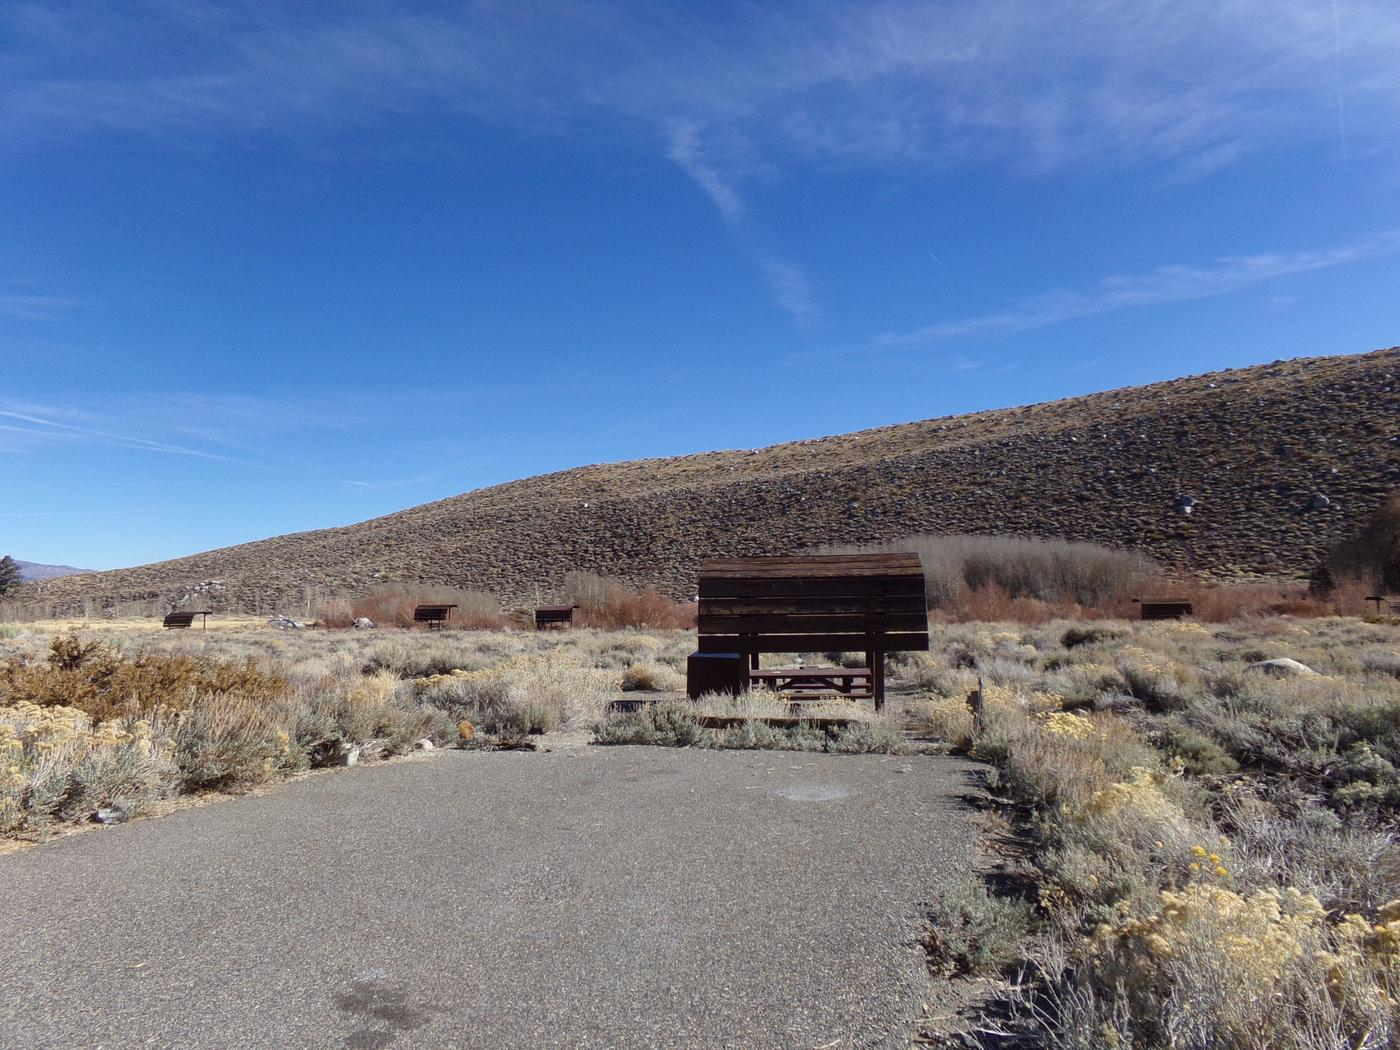 Parking space and entrance to site #11, McGee Creek Campground.